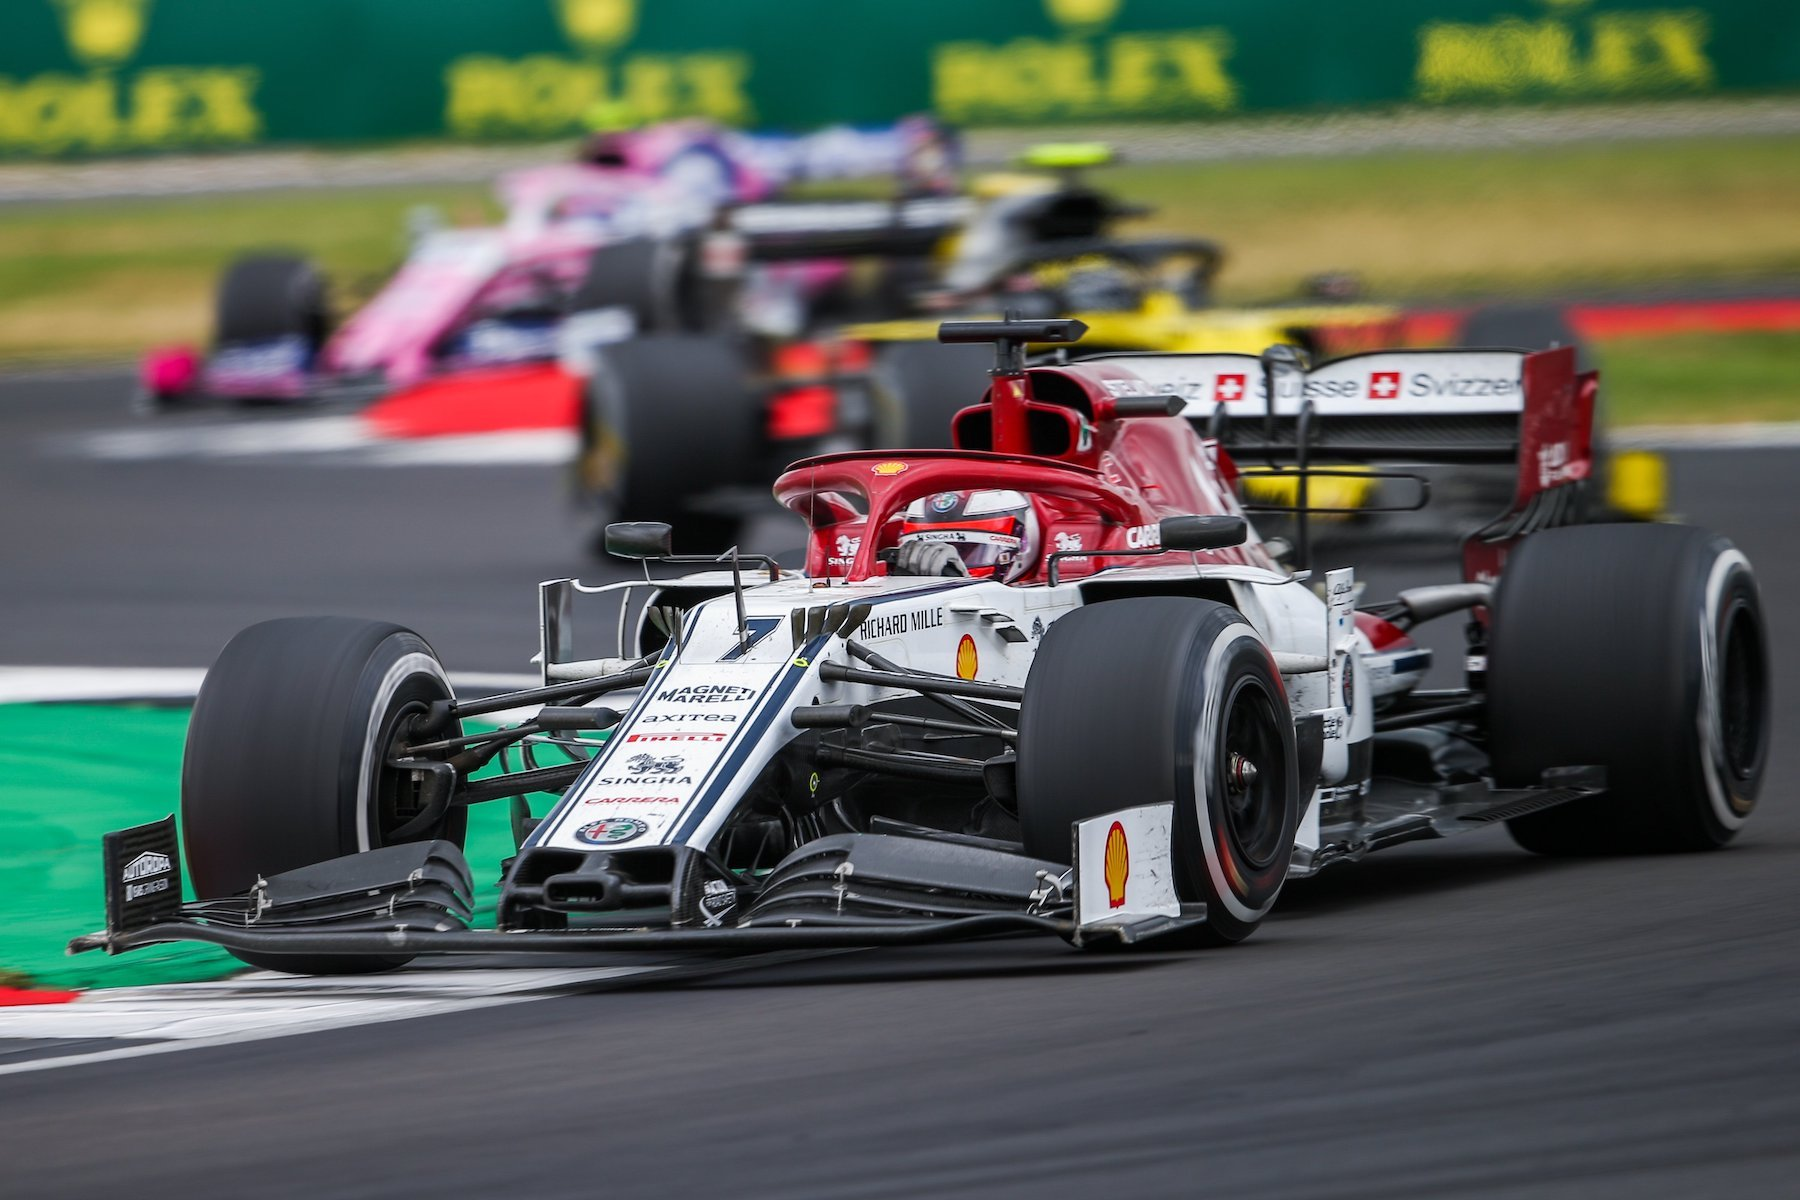 6 F 2019 British Grand Prix Sunday 21.jpg